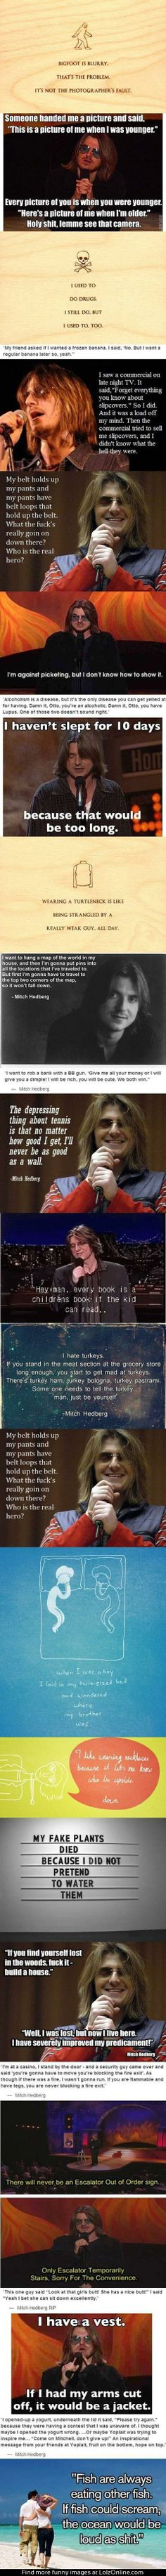 Mitch Hedberg, Who is hilarious